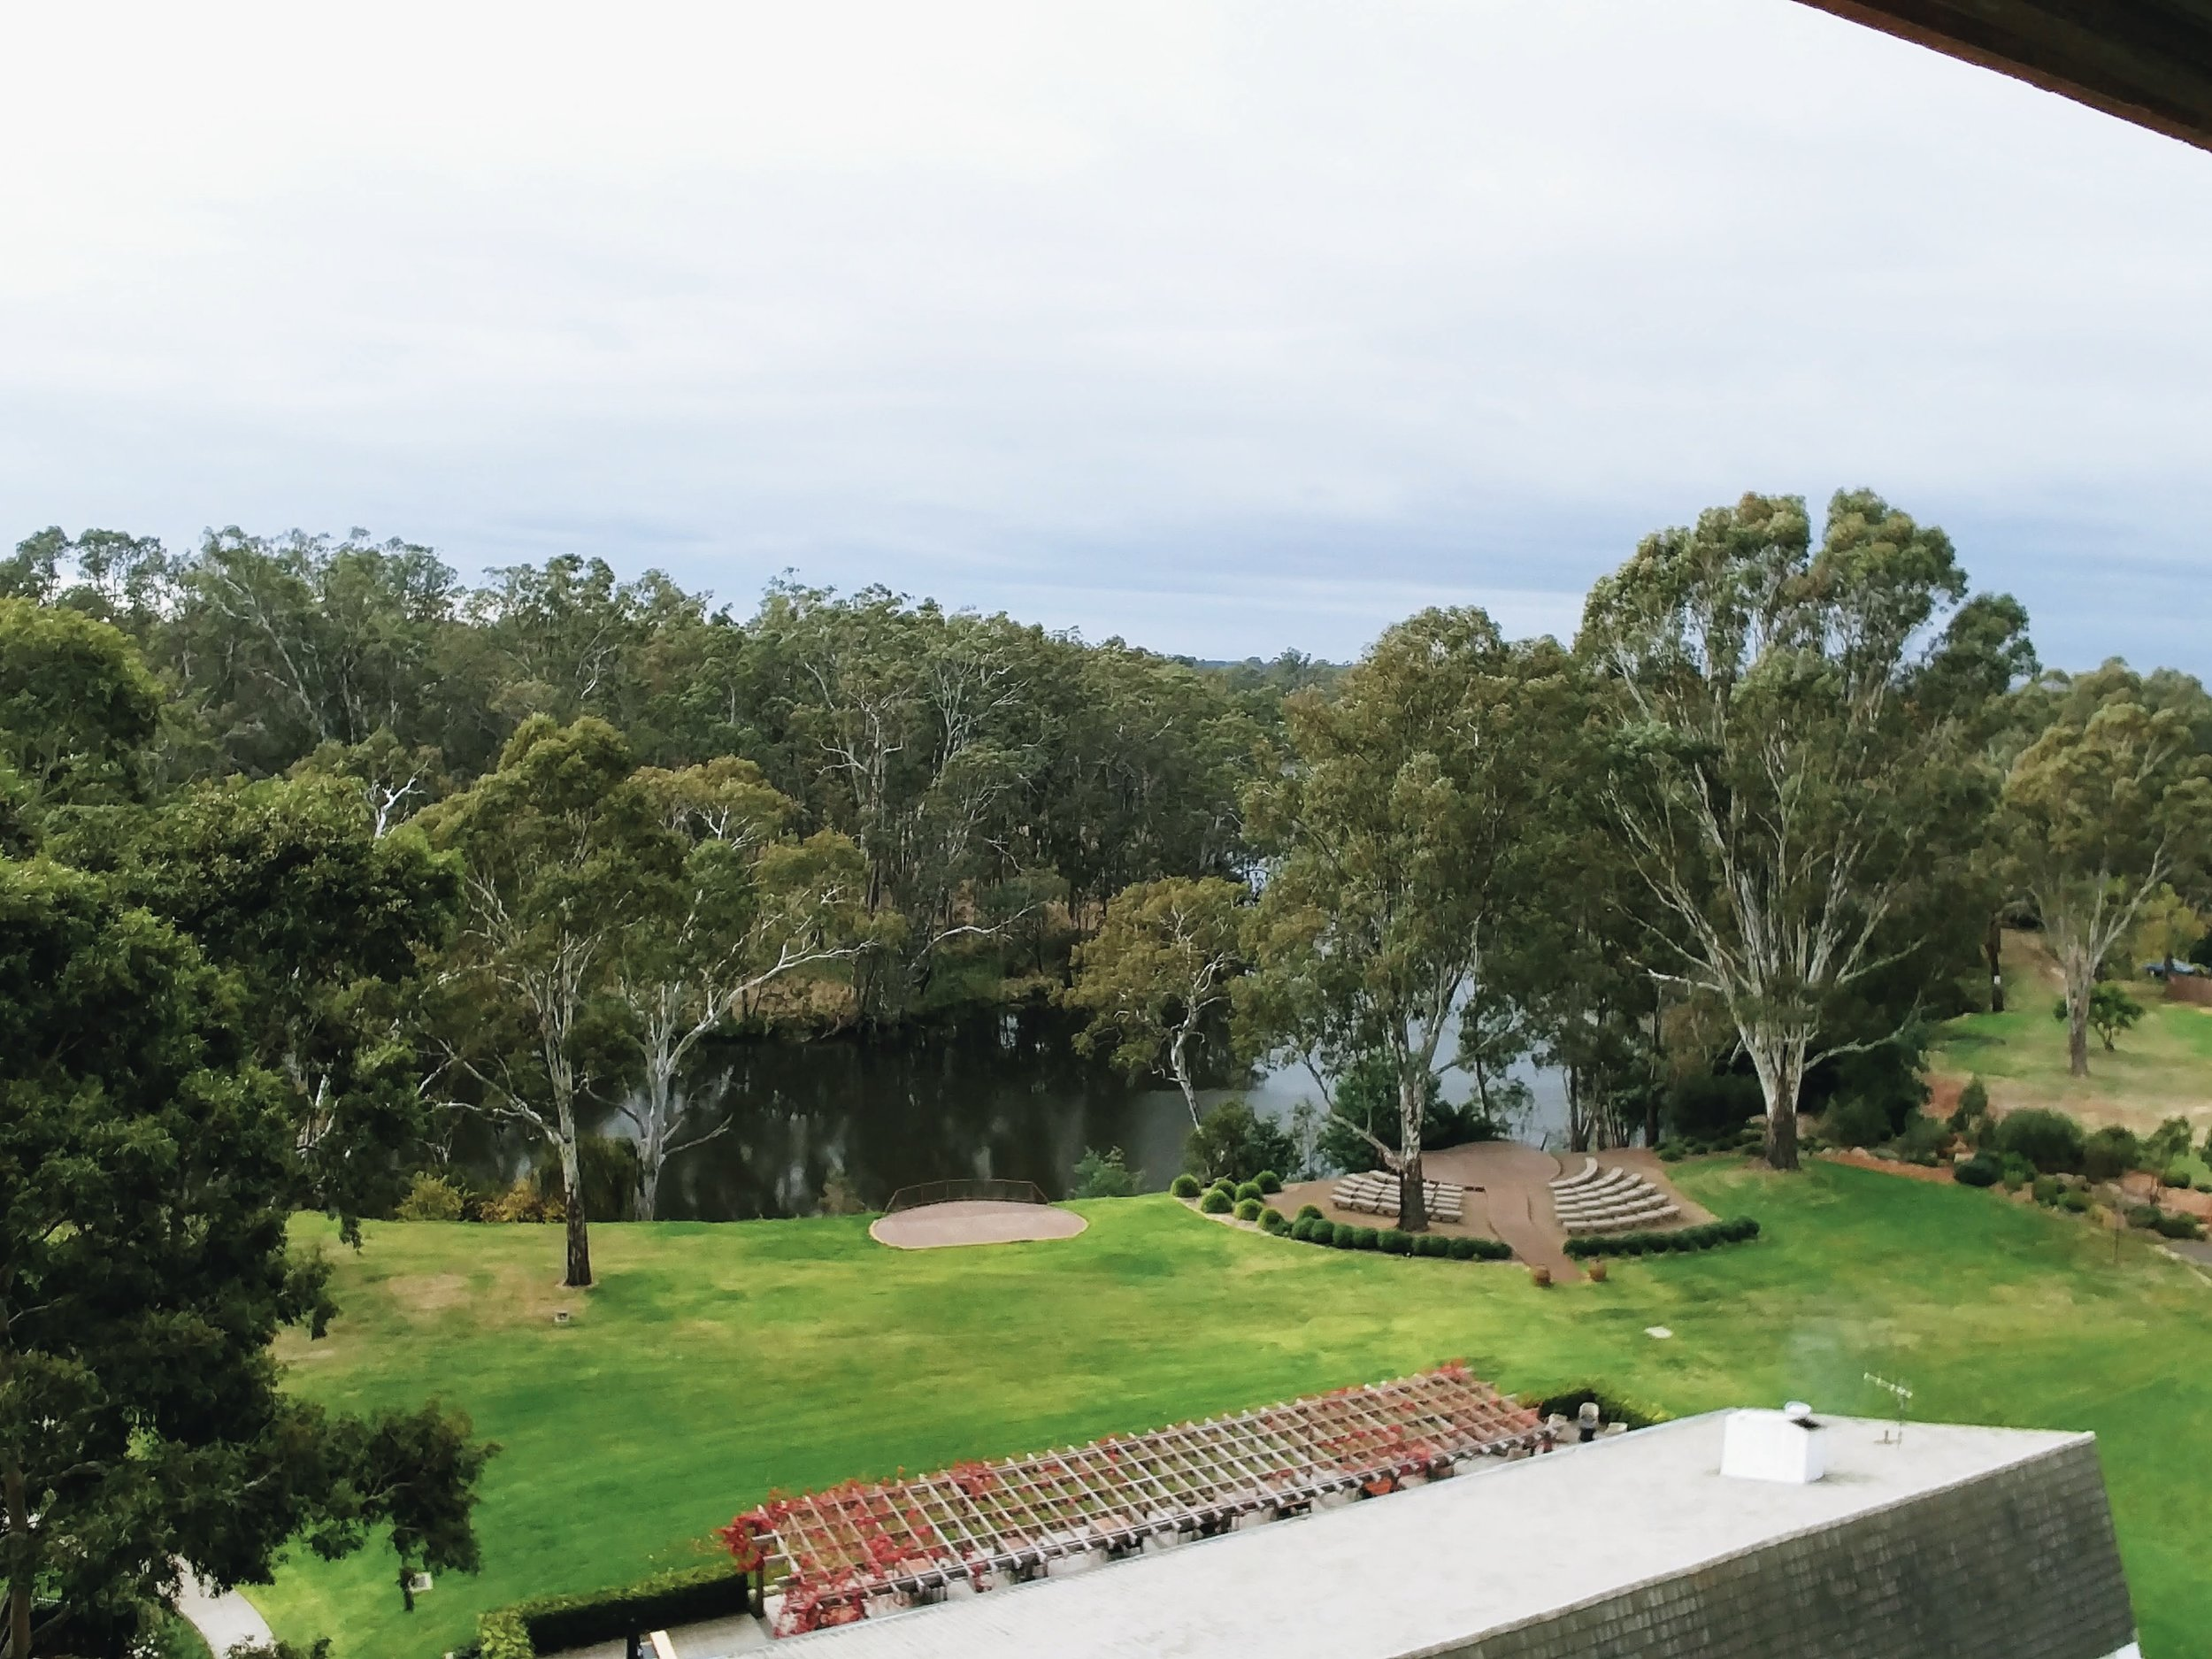 The view of the Goulburn river from the top of the tower